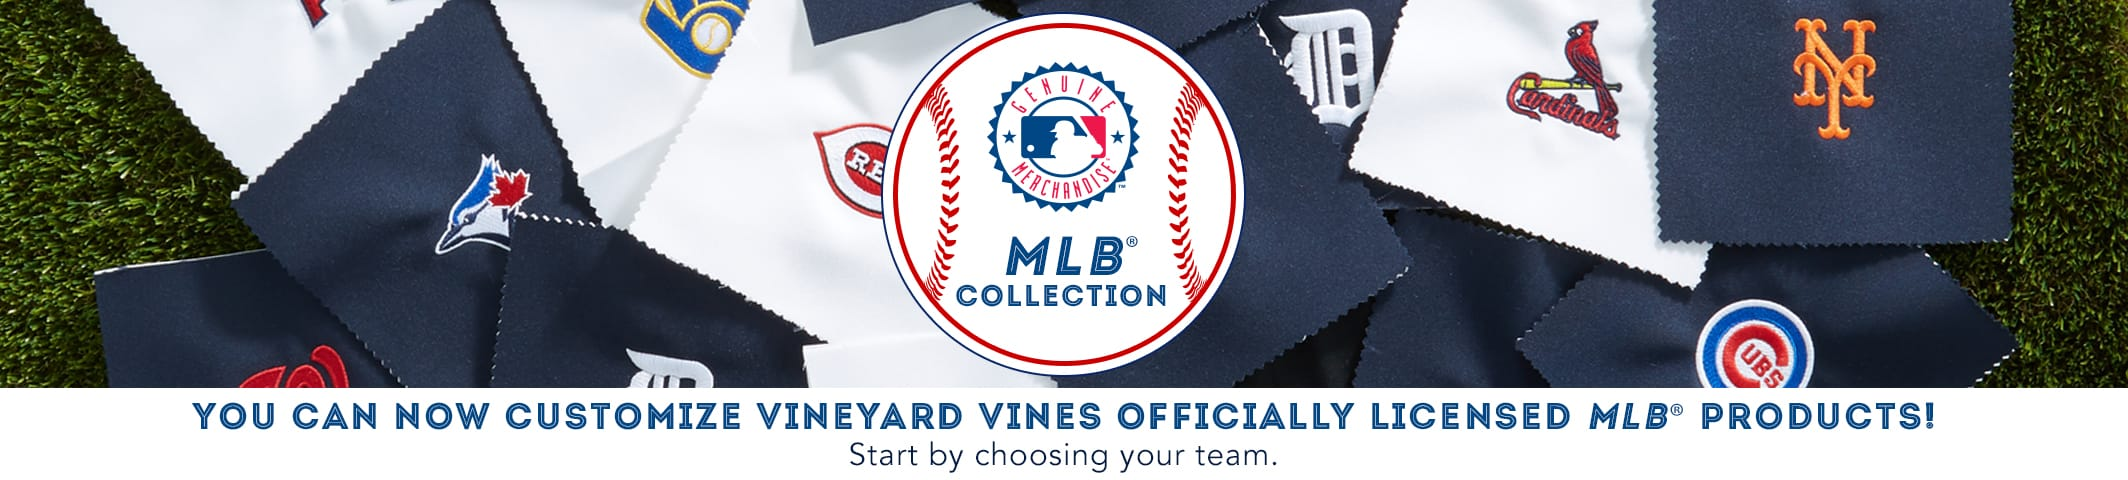 MLB Collection: You Can Now Customize Vineyard Vines Official Licensed MLB Products! Start by choosing your team